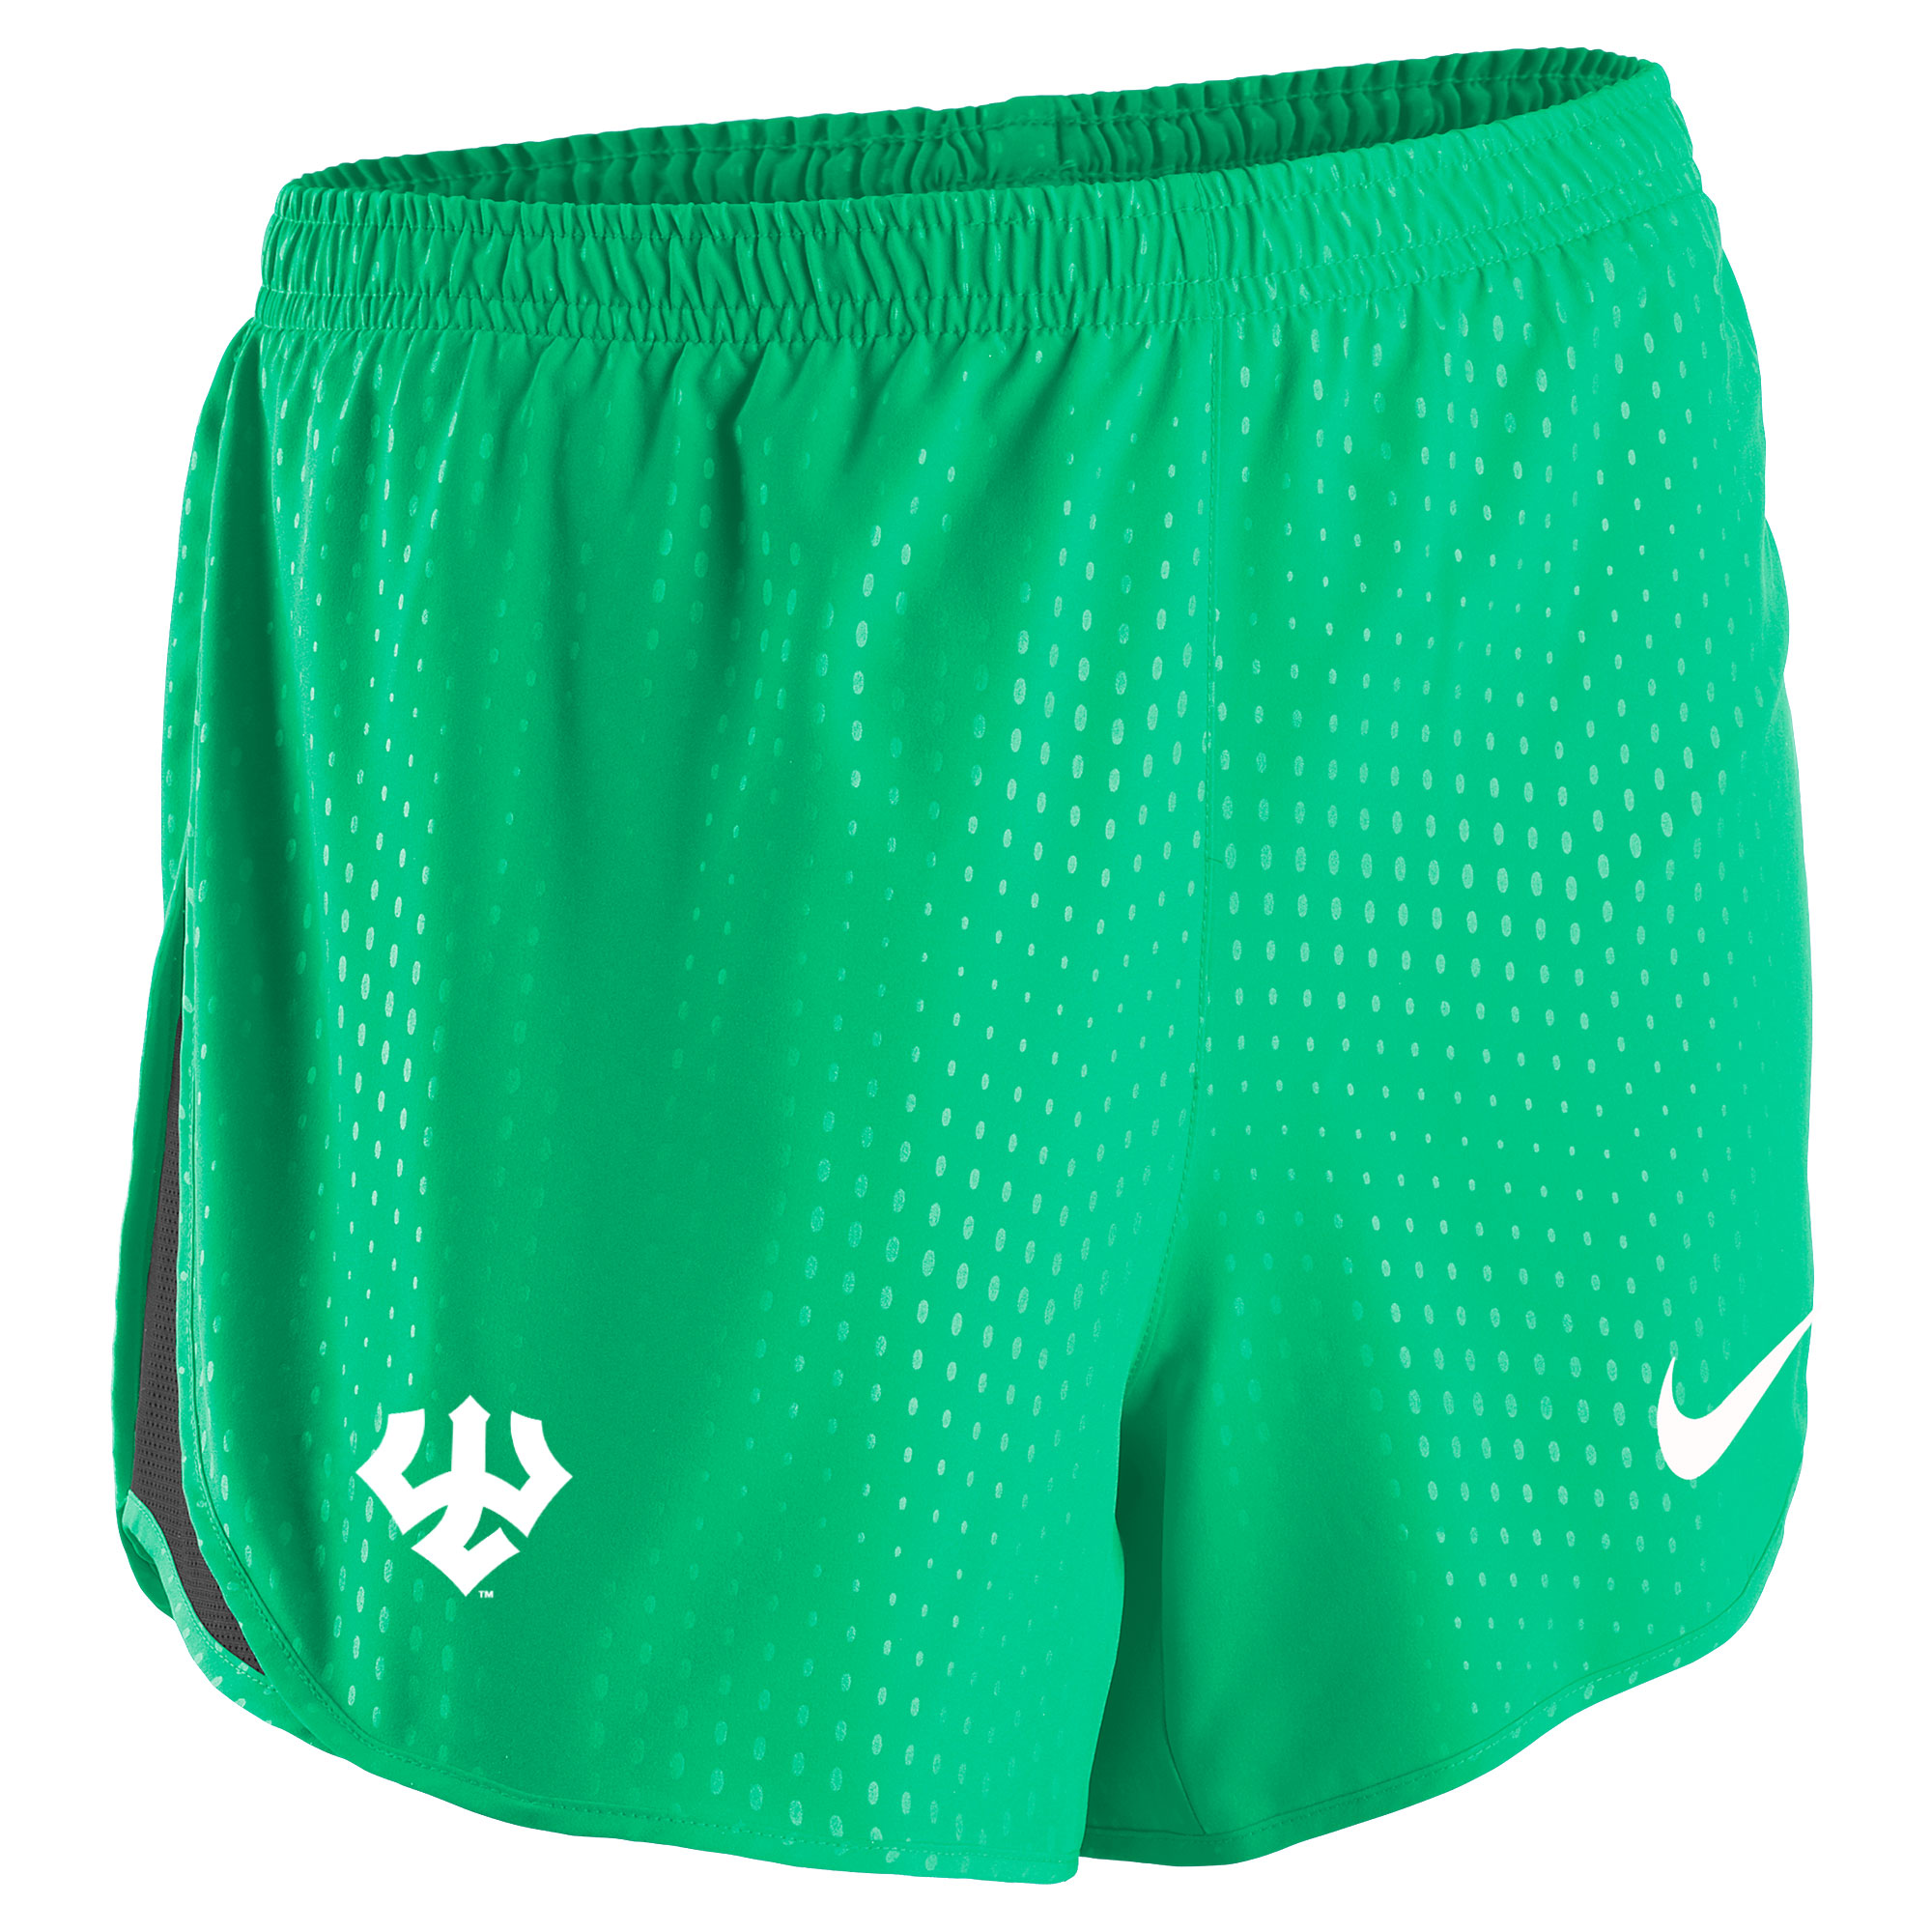 Nike Stadium Mod Tempo Shorts, Lt. Green